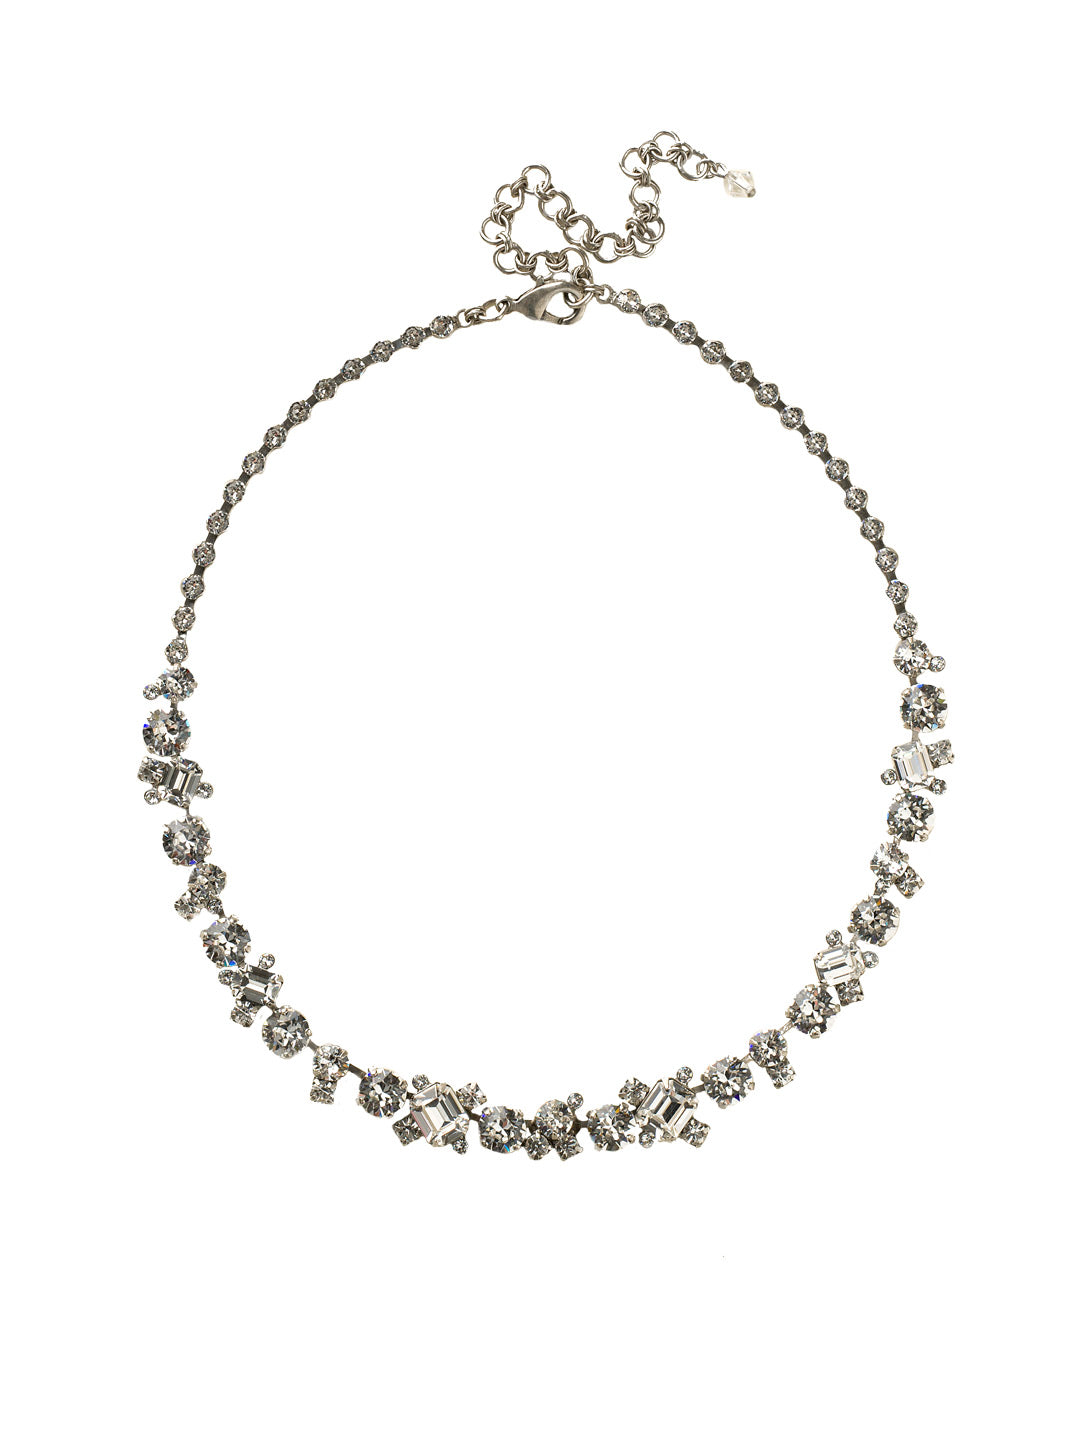 Glittering Multi-Cut Crystal Necklace - NCF6ASCRY